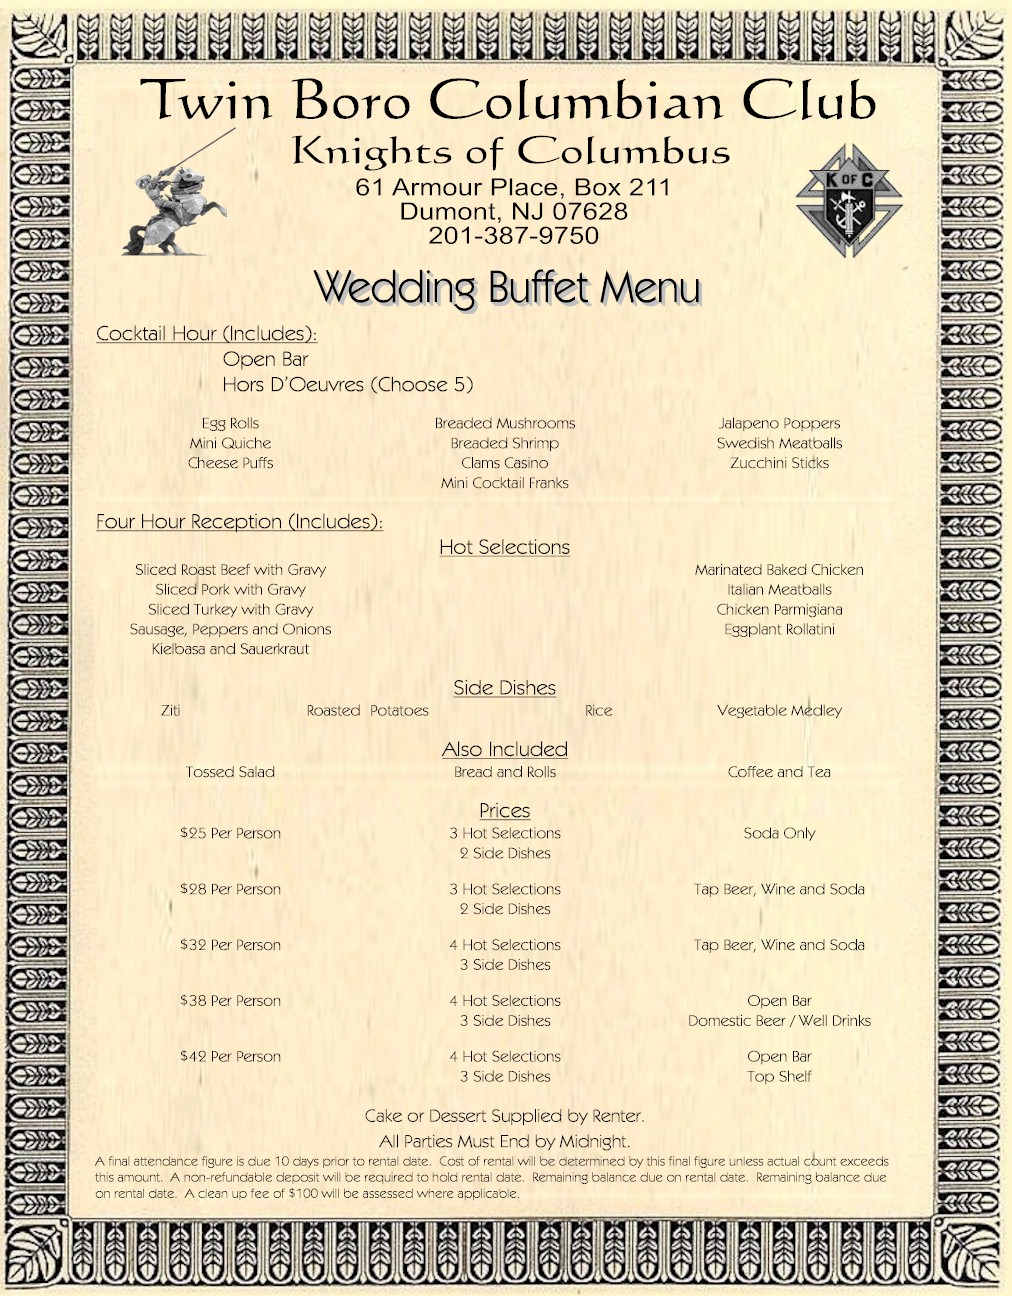 Wedding buffet menu at a medieval style restaurant